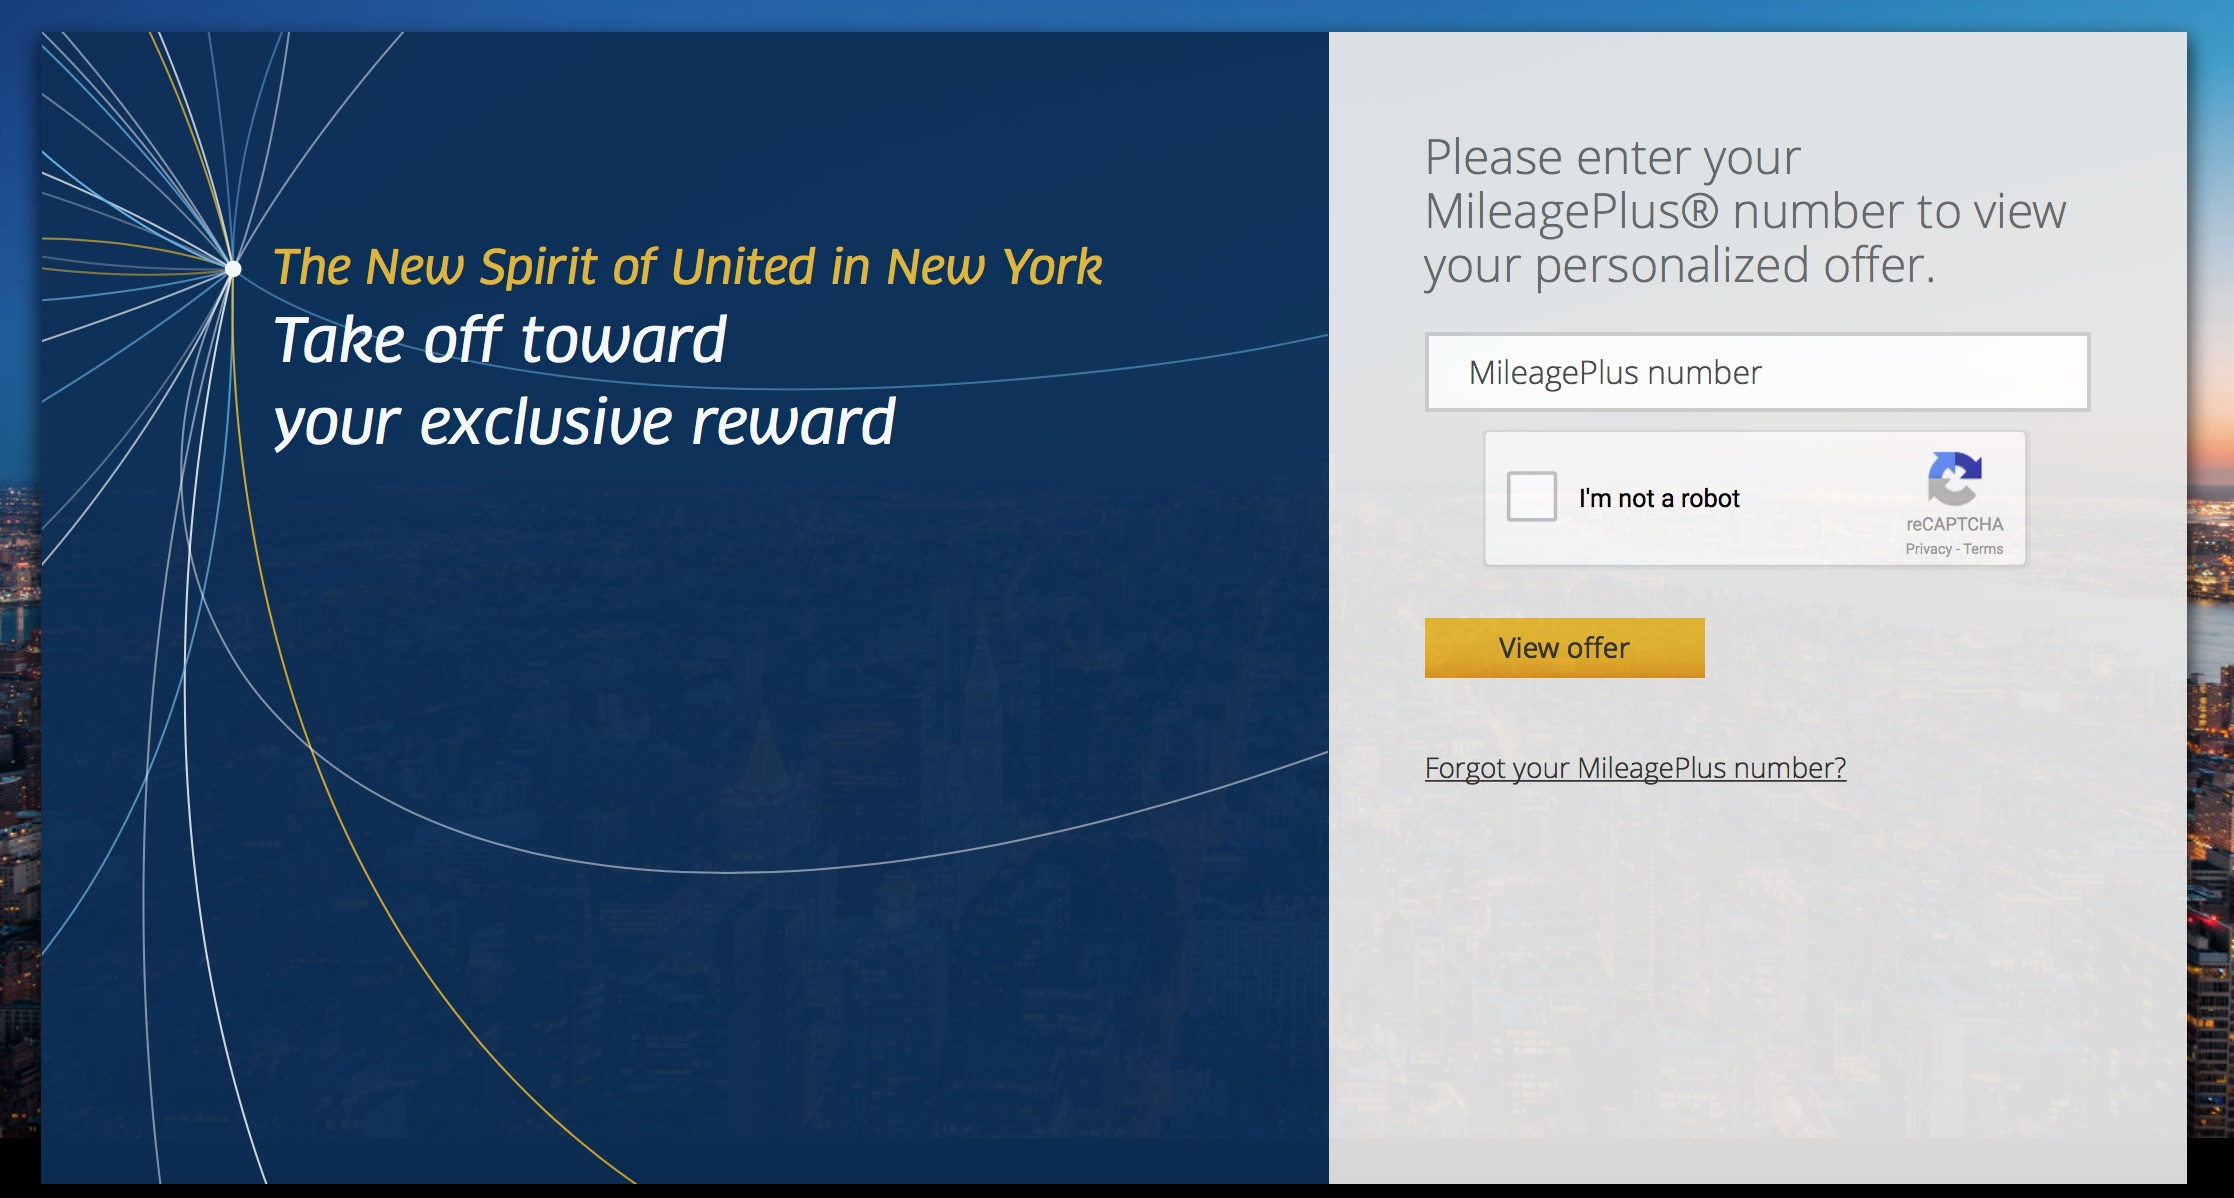 New Spirit of United New York Offer 01